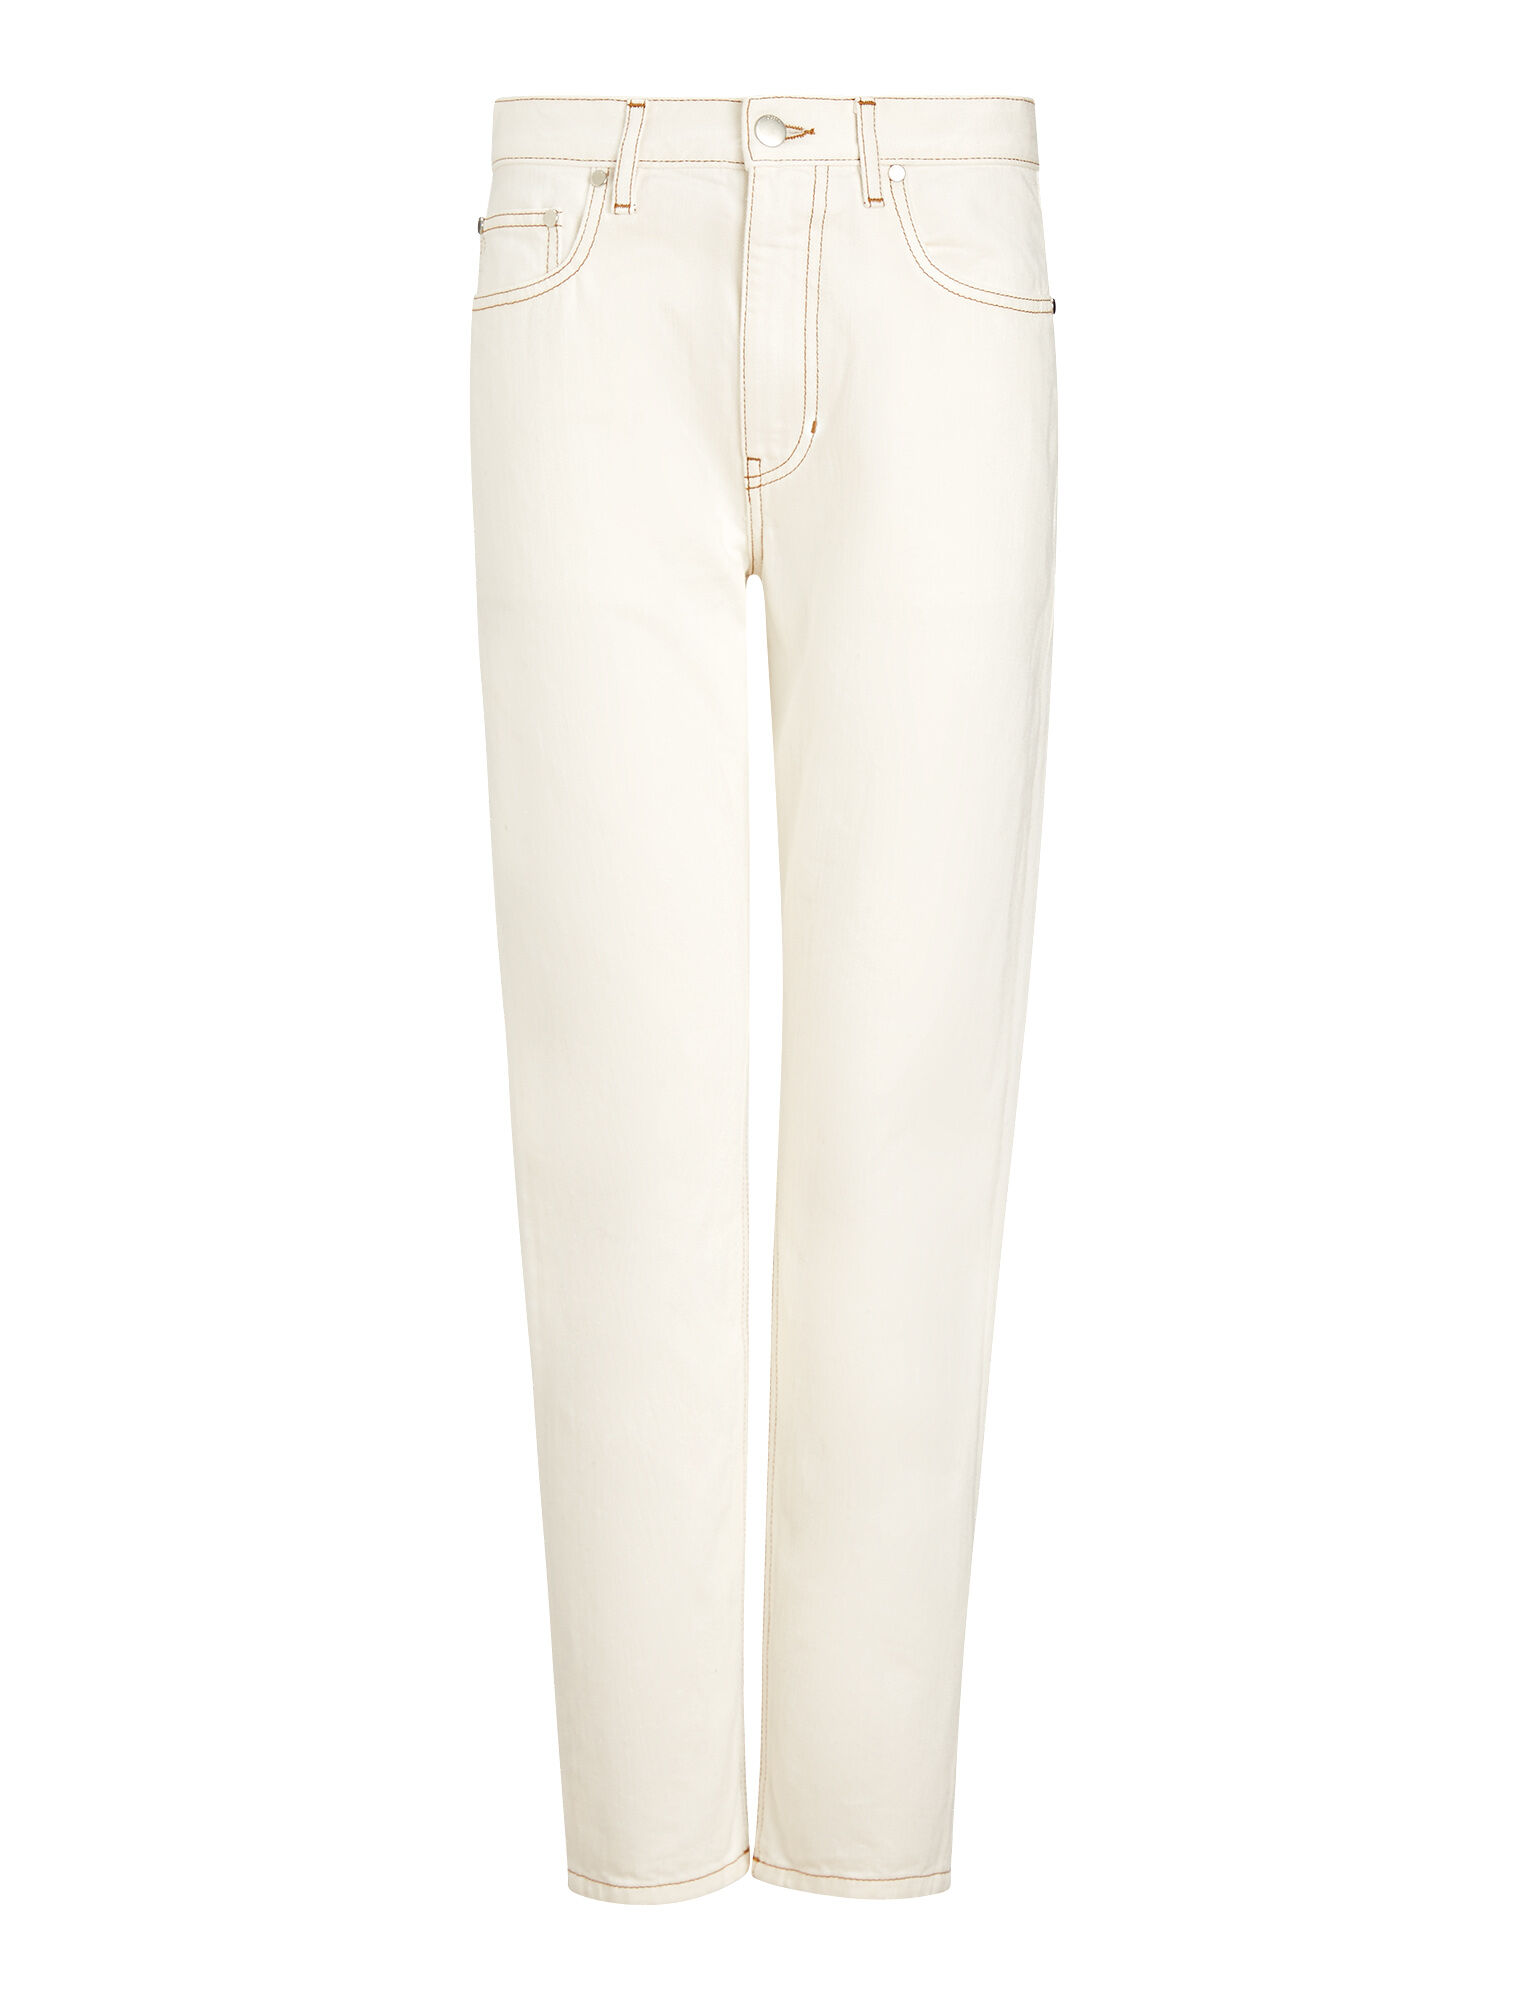 Joseph, Kemp White Denim Trousers, in WHITE